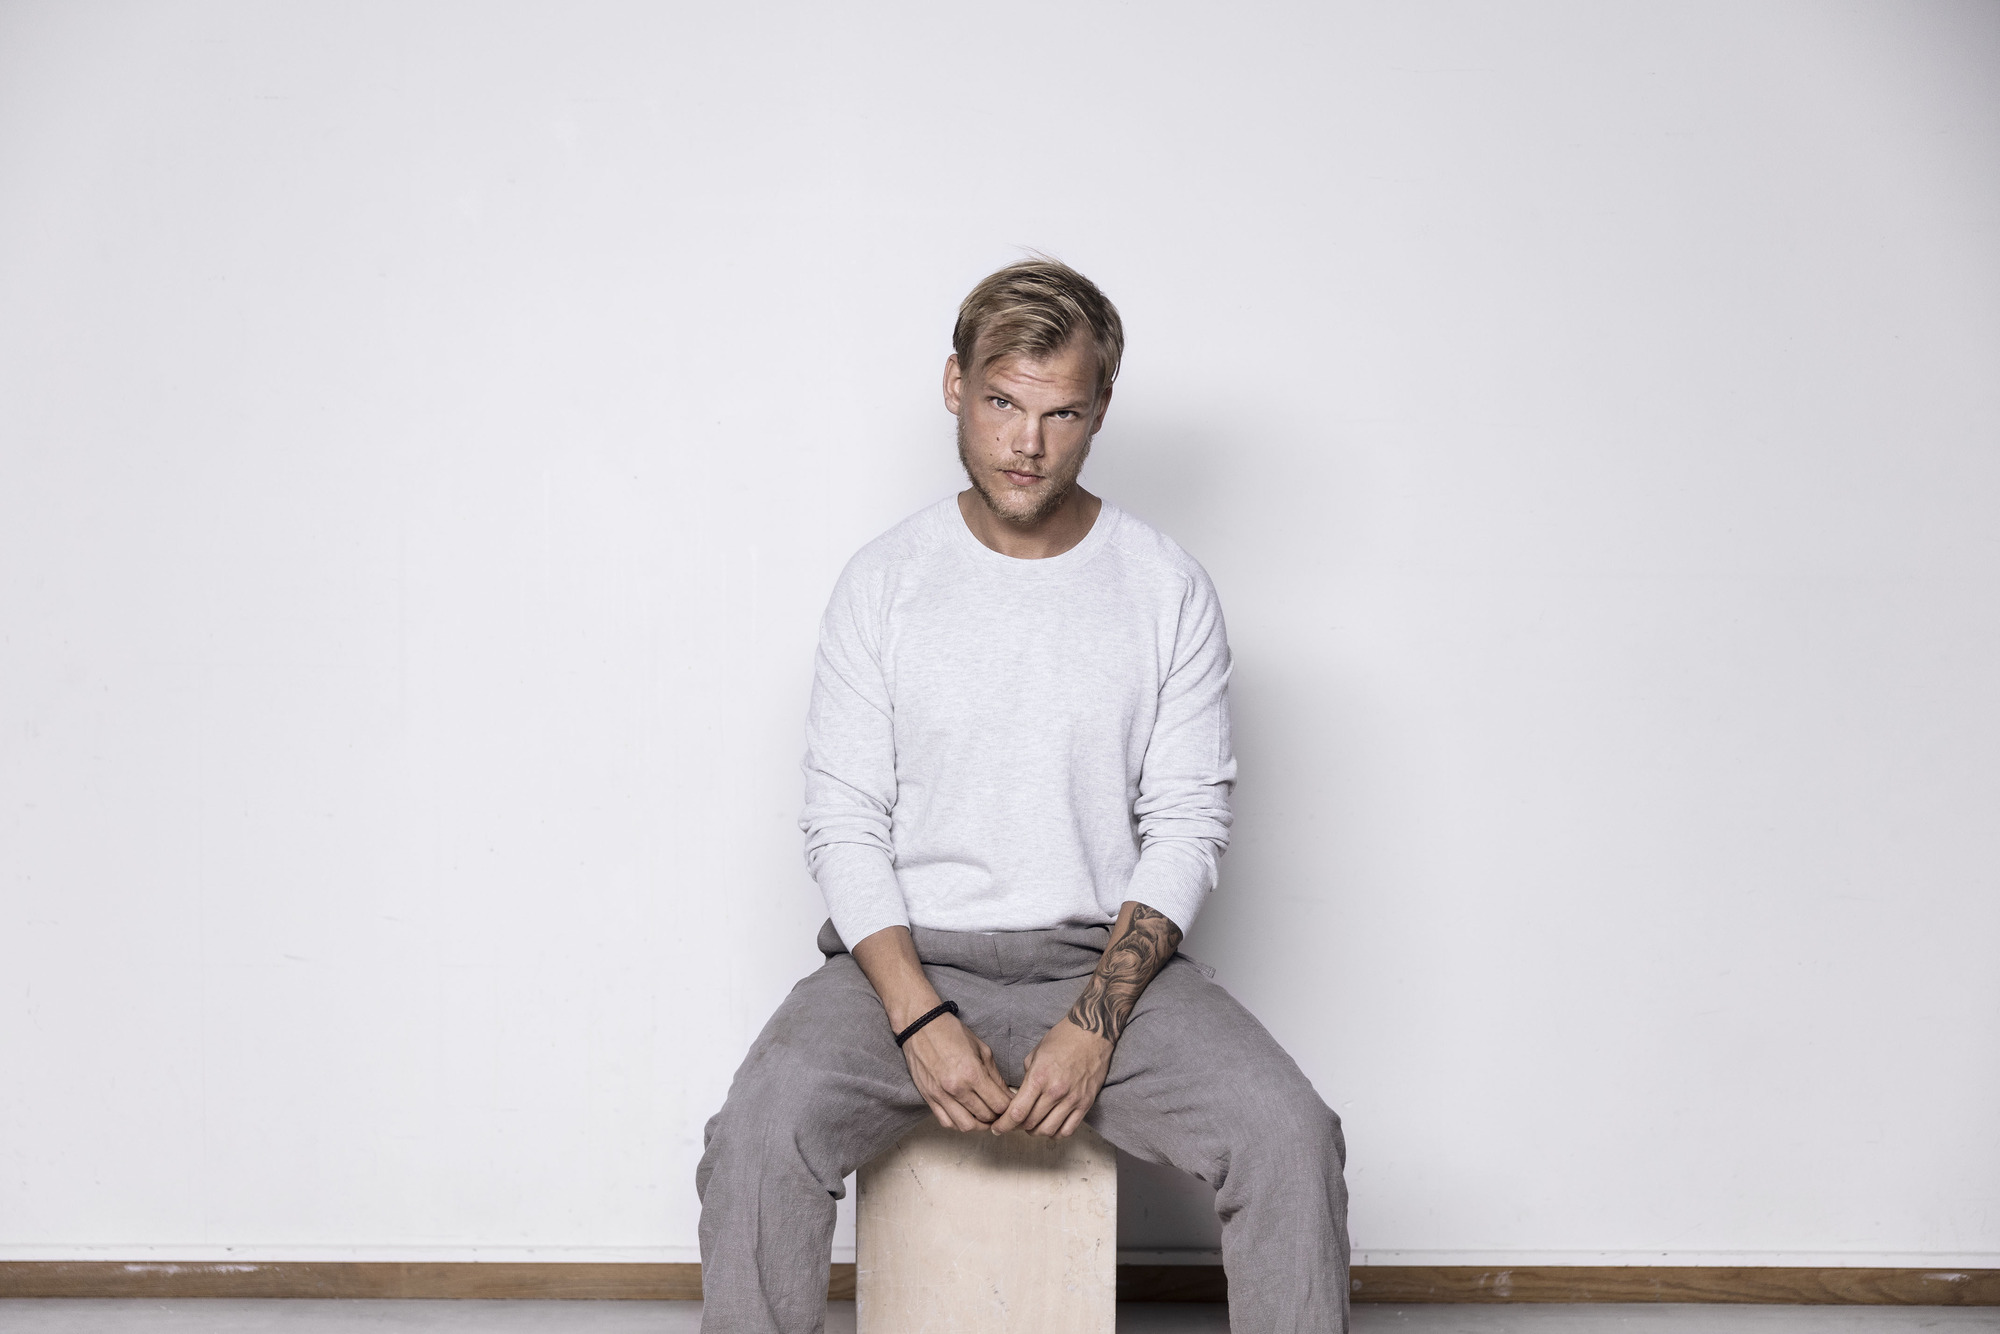 Avicii reveals he was 'taking 20 pills a day' as he battled pancreatitis and painkiller addiction in documentary